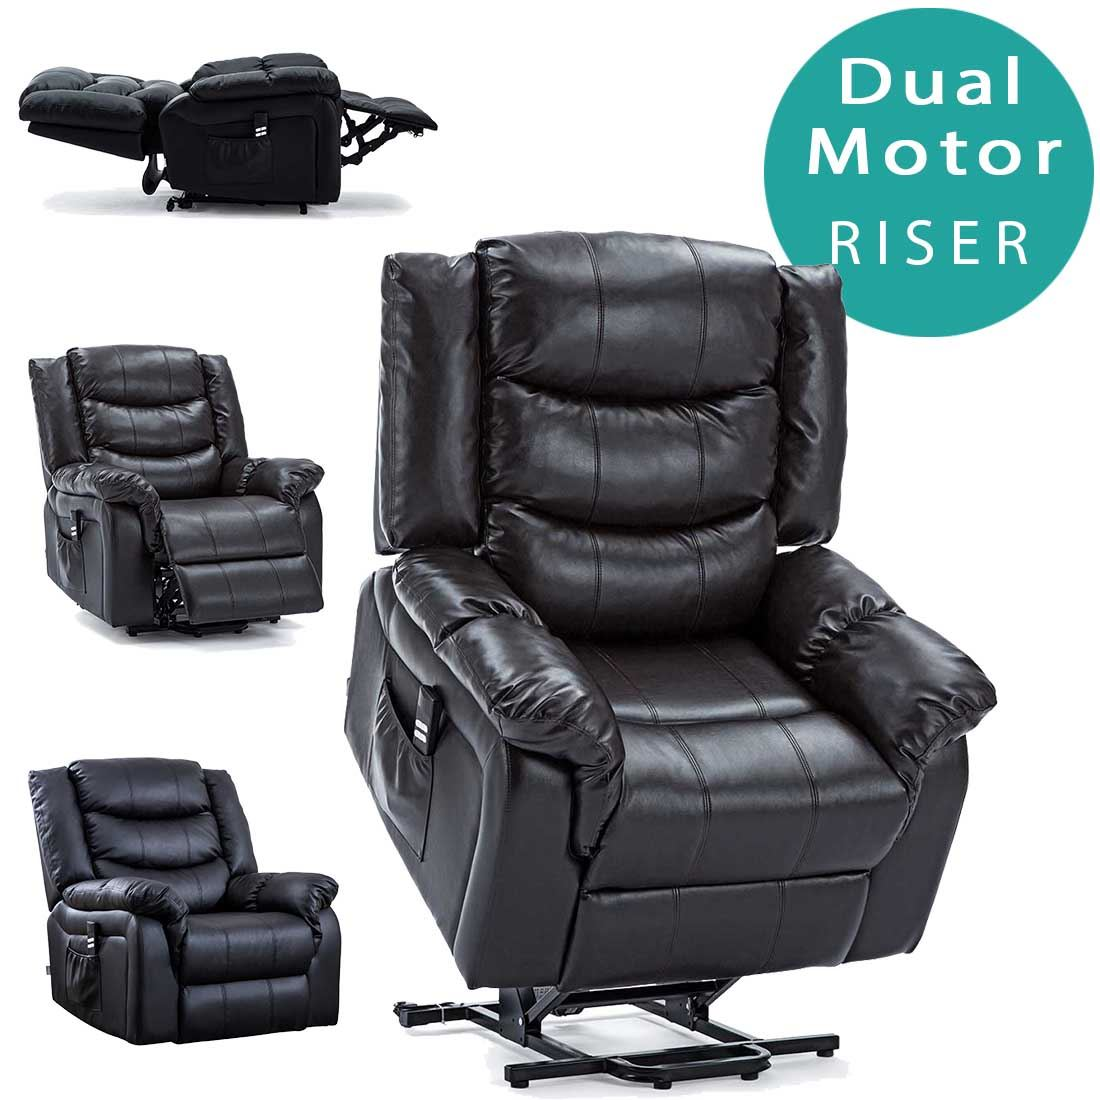 Seattle Dual Motor Riser Recliner Bonded Leather Armchair